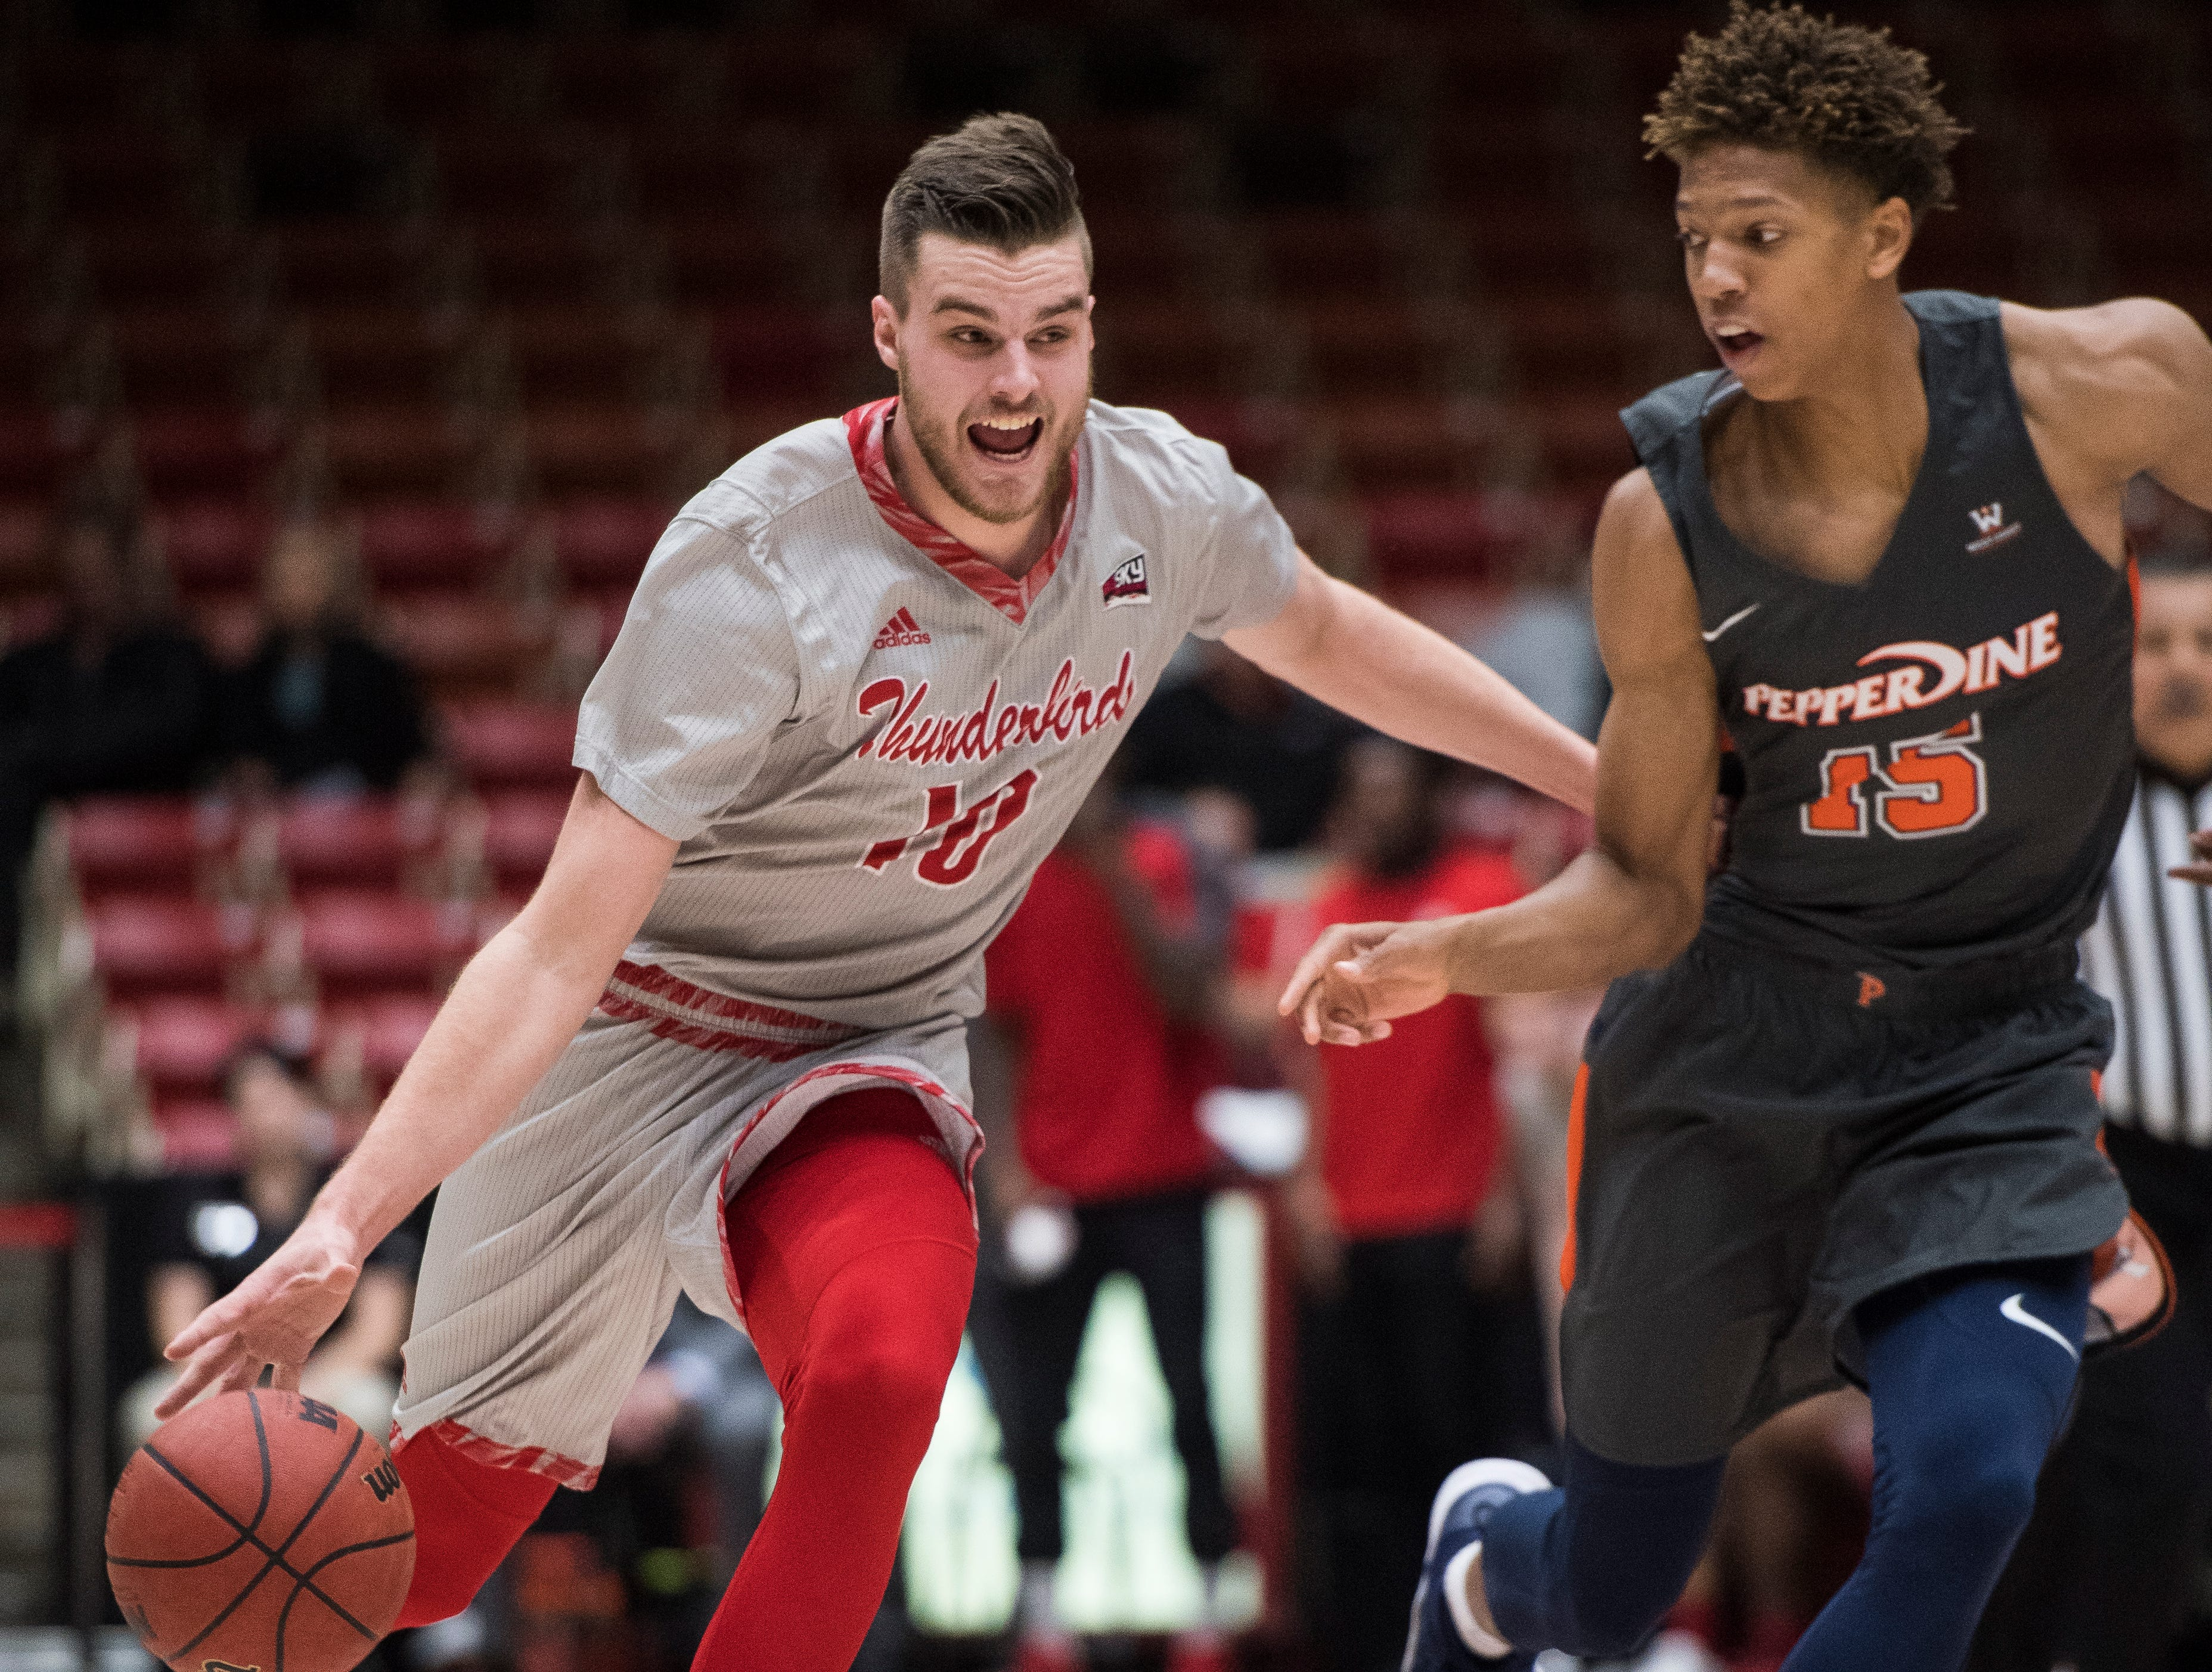 Southern Utah University junior Jacob Calloway (10) runs down the court against Pepperdine University in the America First Event Center Saturday, December 15, 2018. SUU won in overtime, 78-69.